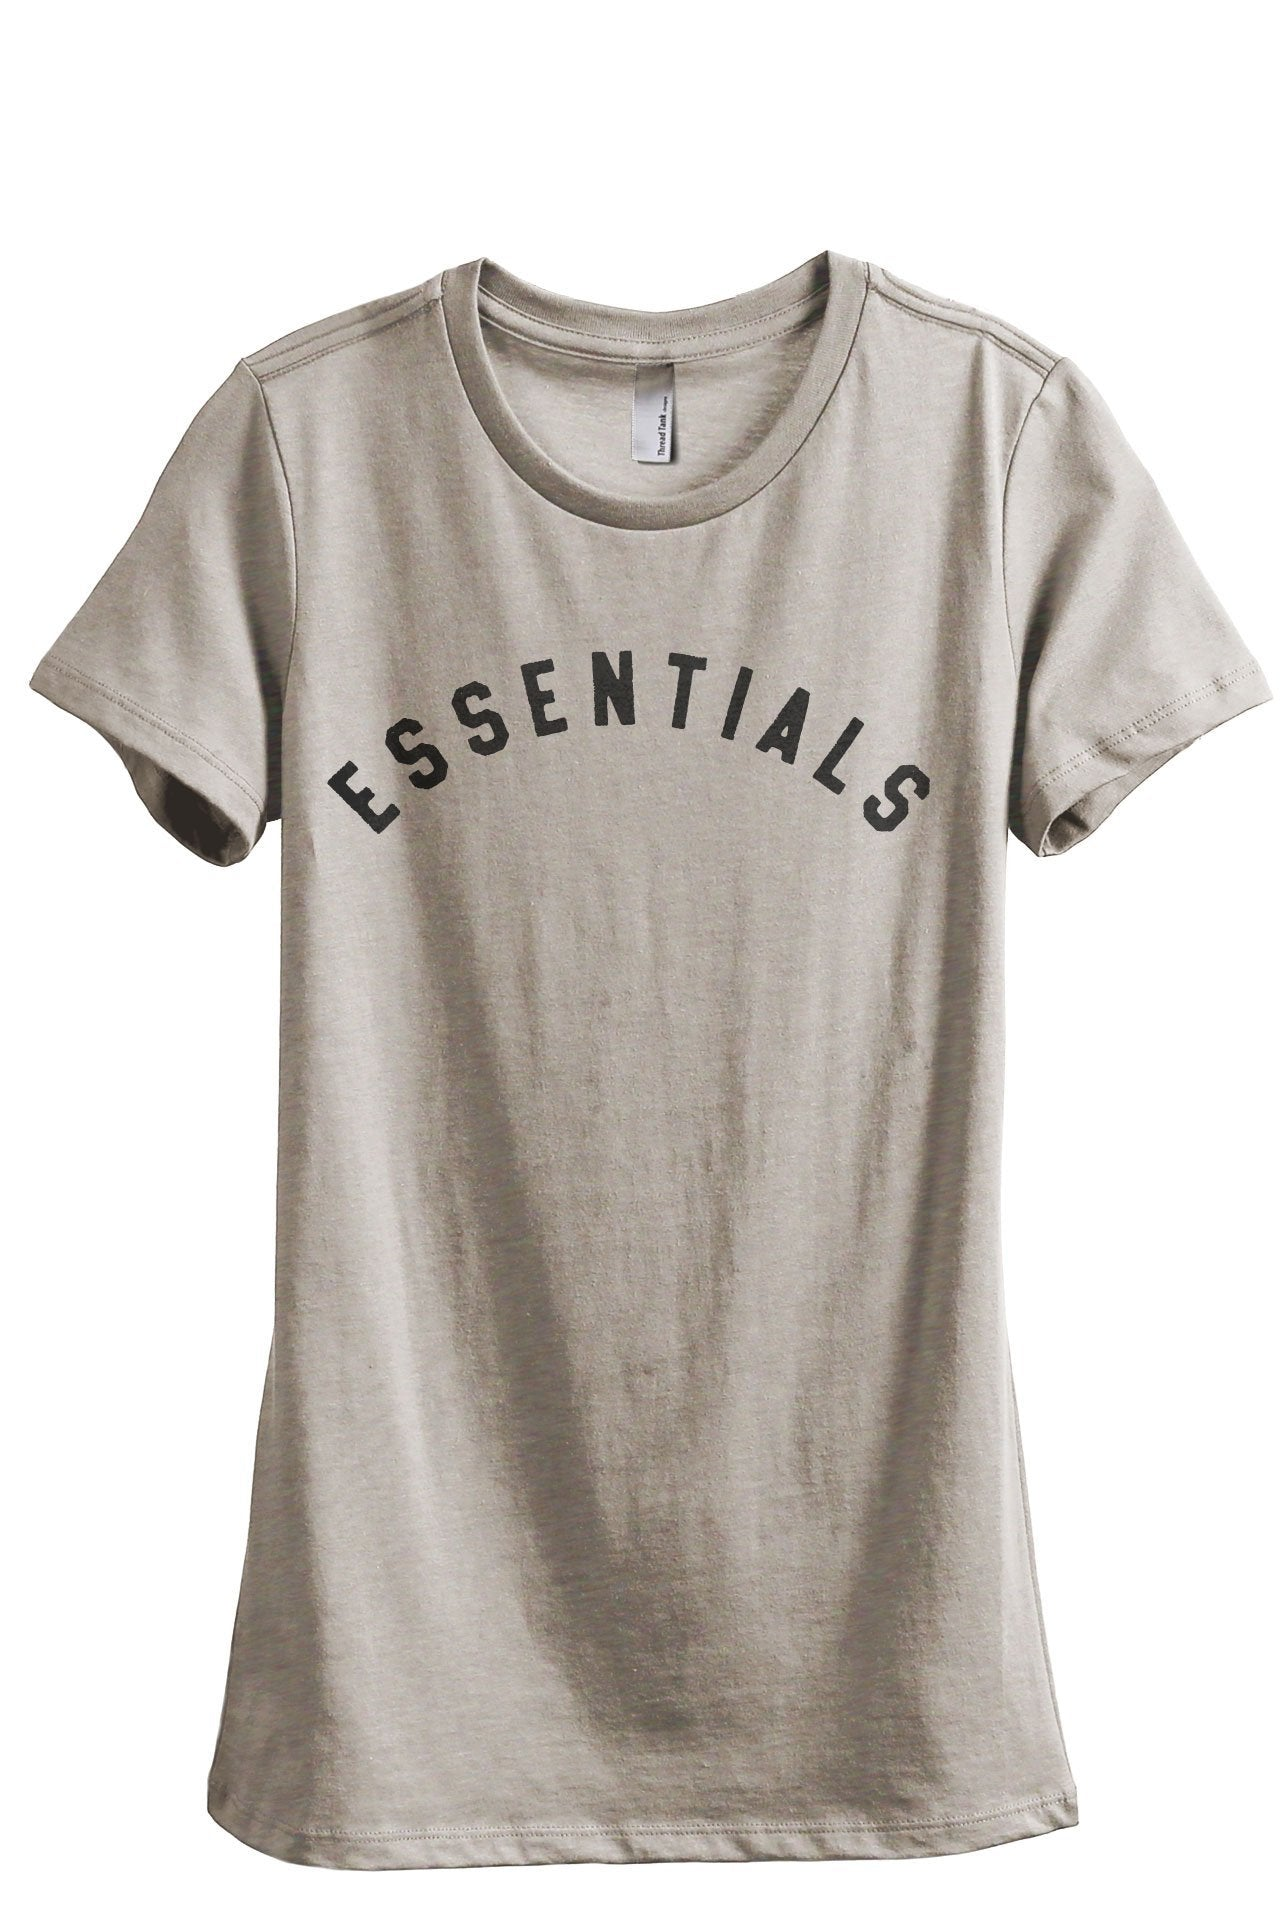 Essentials Women's Relaxed Crewneck T-Shirt Top Tee Charcoal Grey